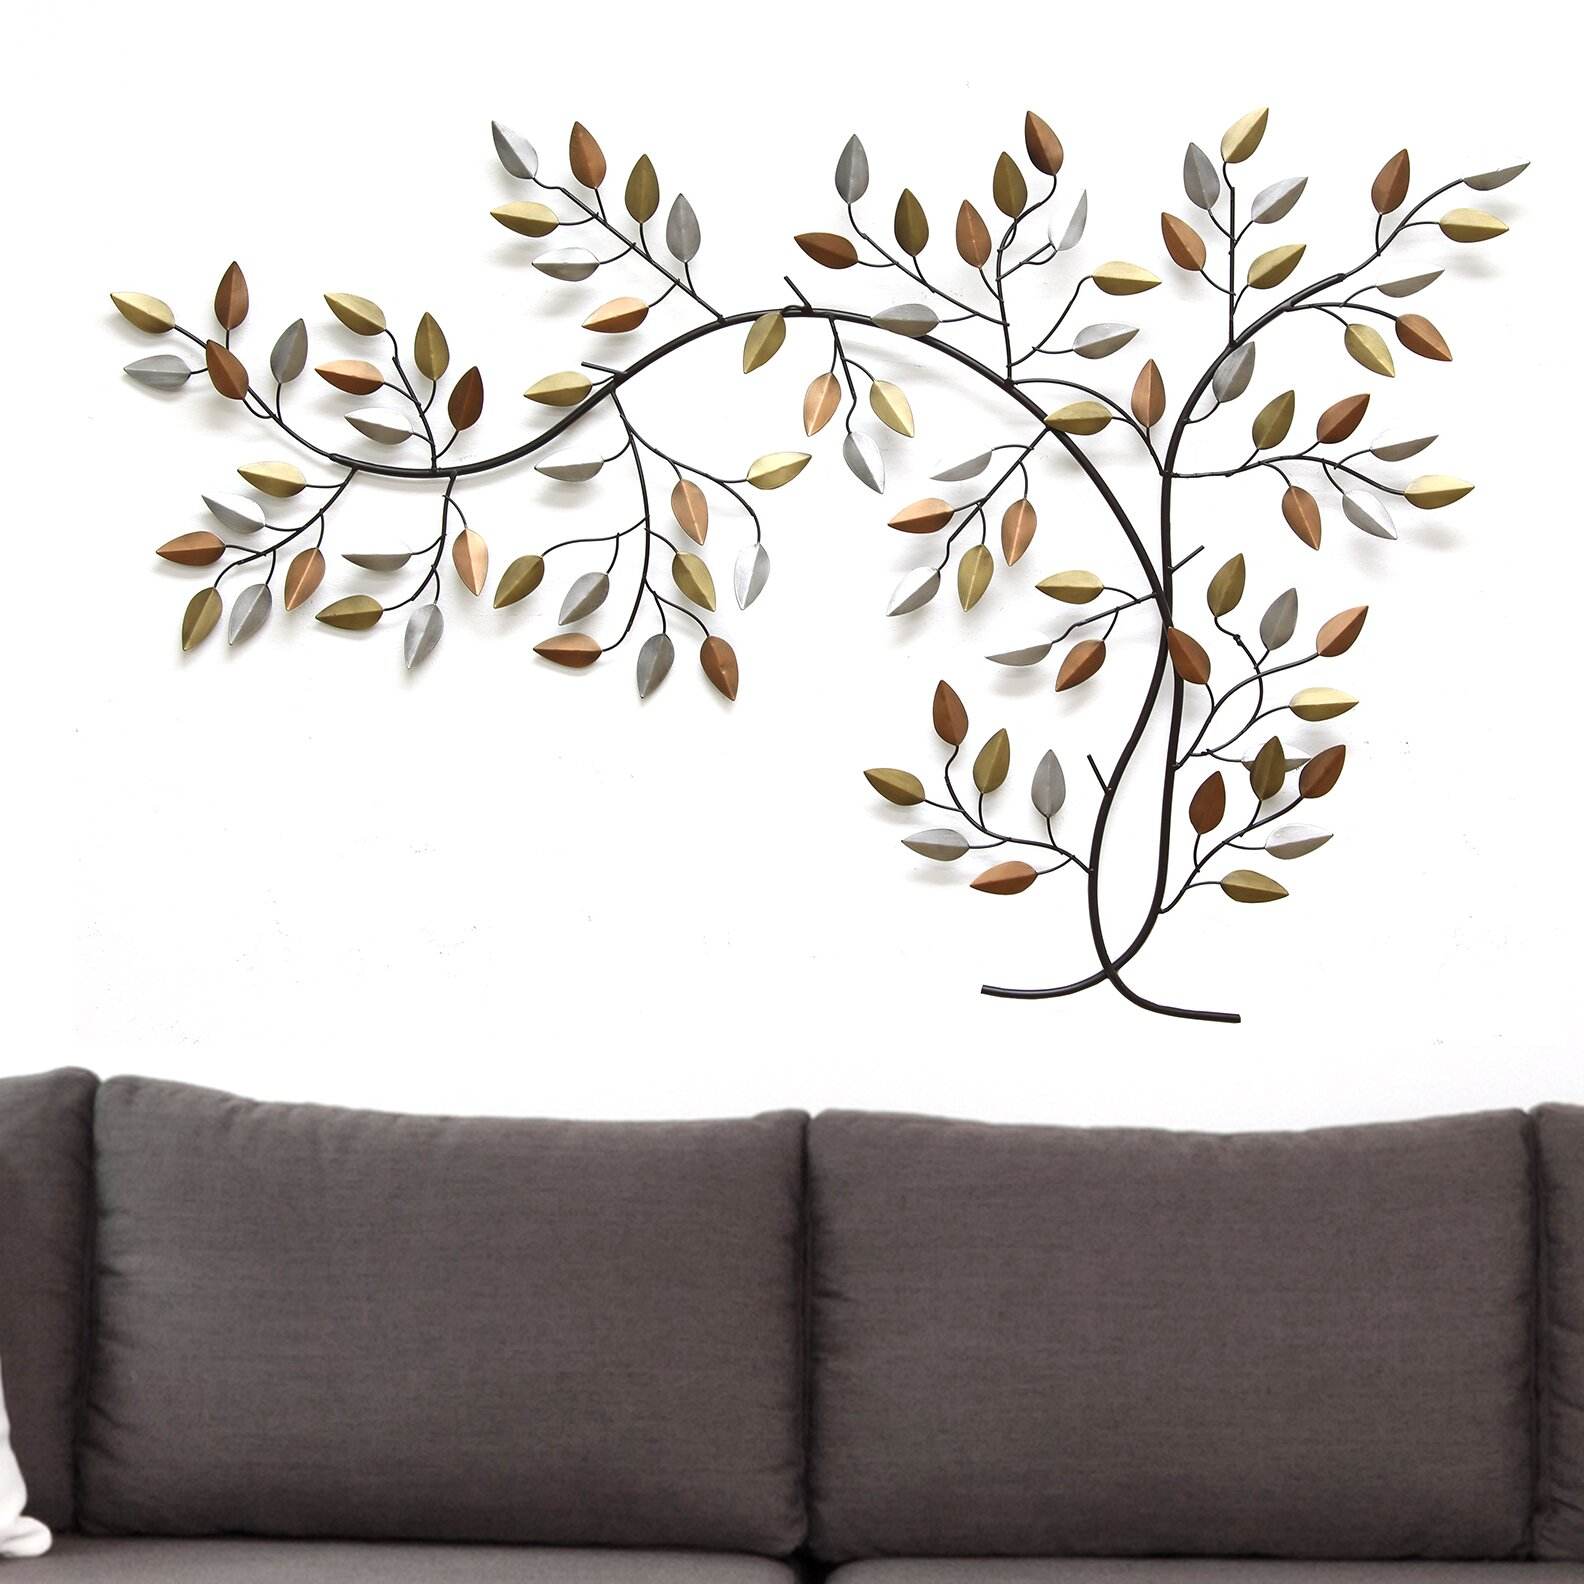 metal tree branch wall dcor - Metal Tree Wall Decor